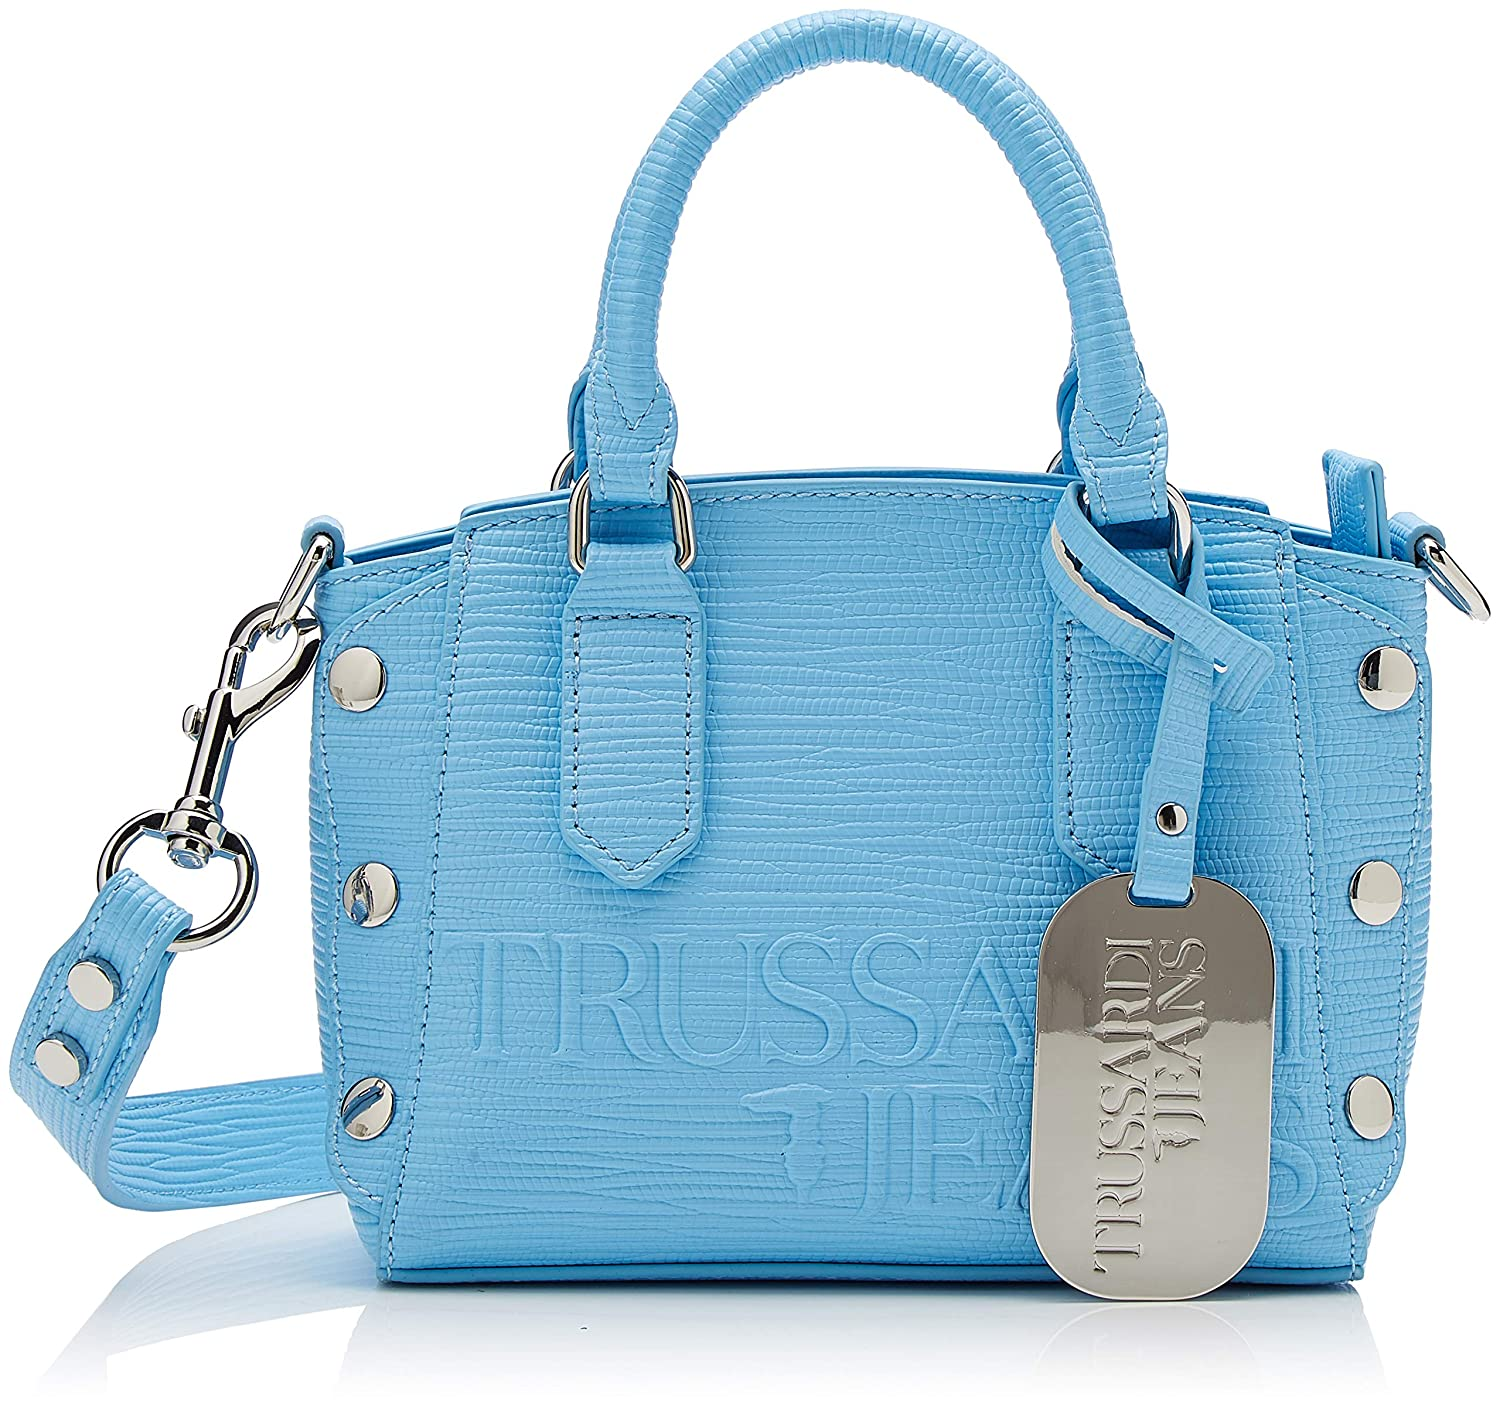 bluee (Light bluee) Trussardi Jeans Women's Melly Tote Xs Tote Bag